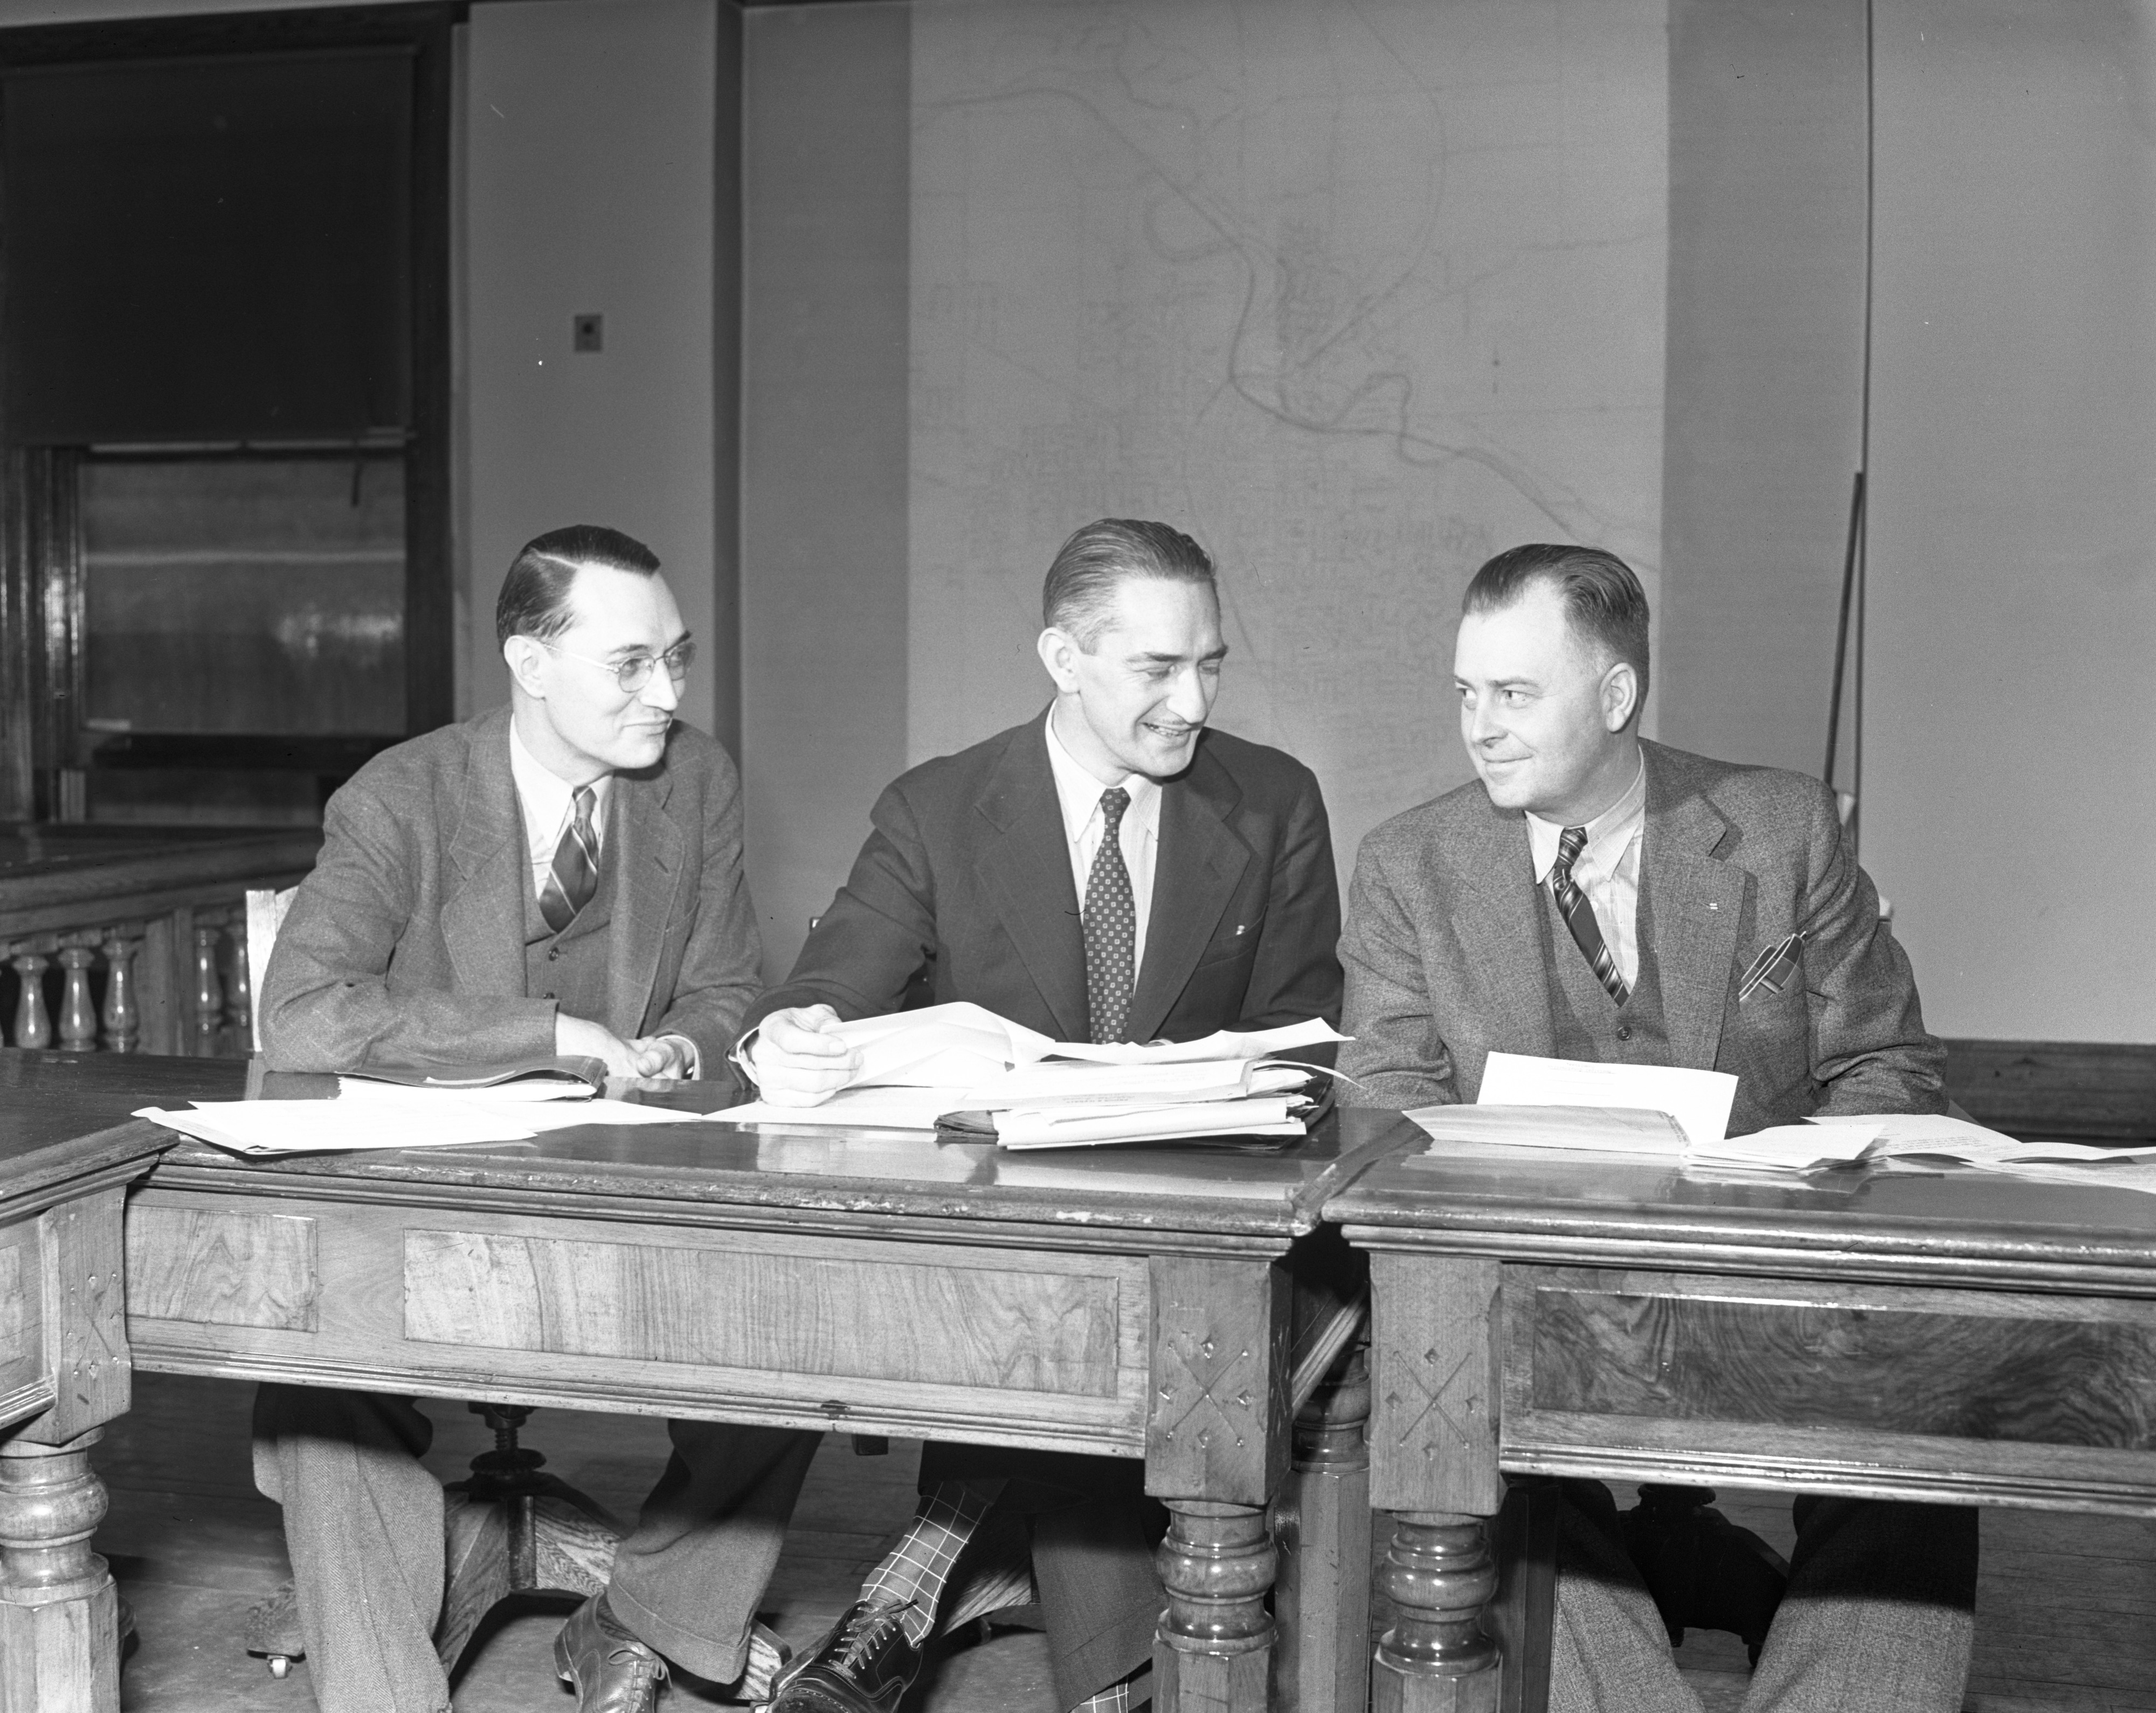 Arthur D. Moore as City Council Member, with Cecil O. Creal (left) and Glenn Alt (right), May 1940 image